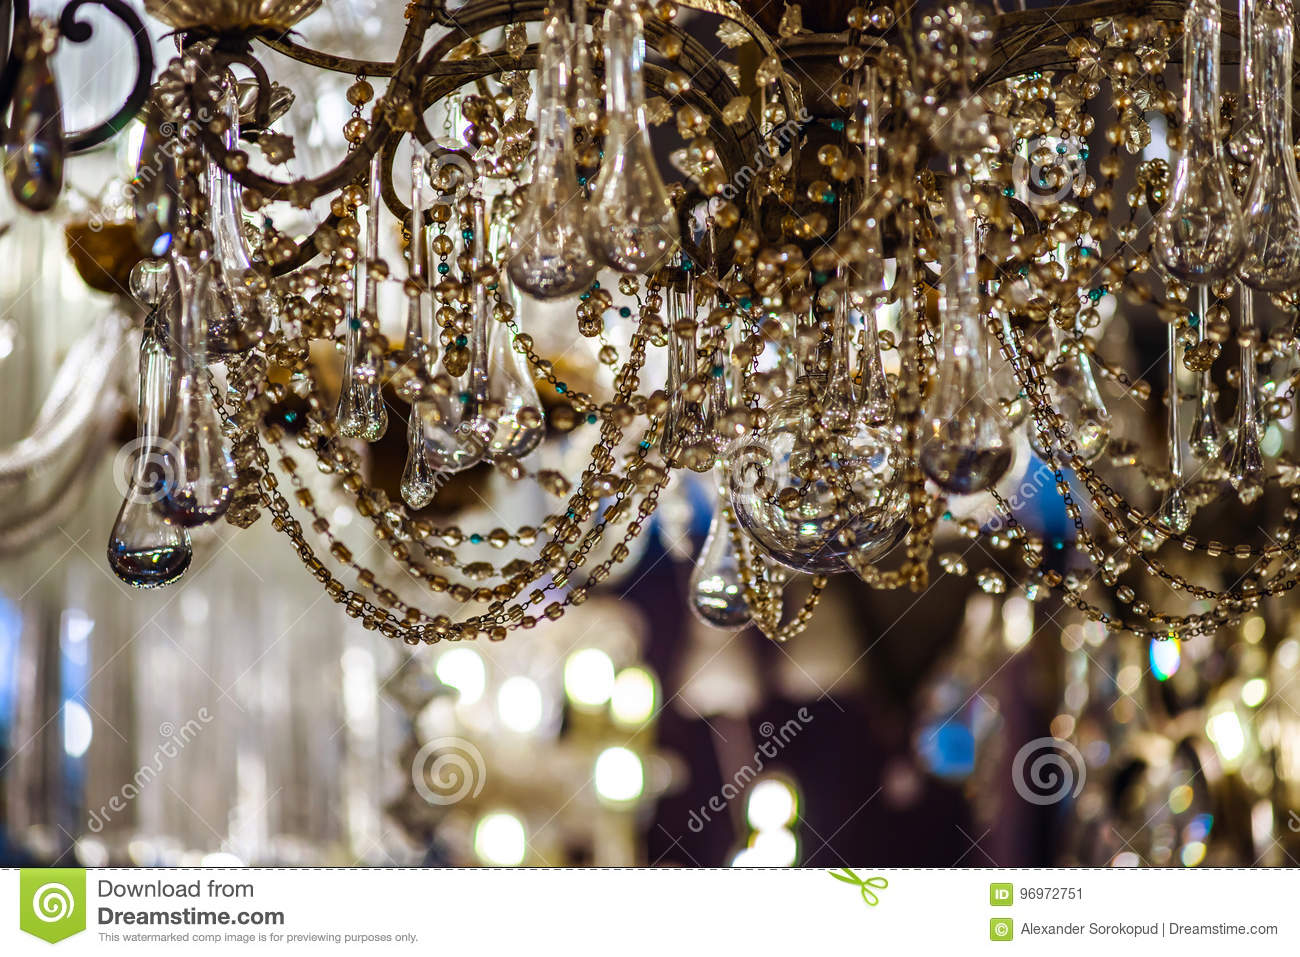 Lüster Vintage Crystal Luster In Antique Shop Stock Image Image Of